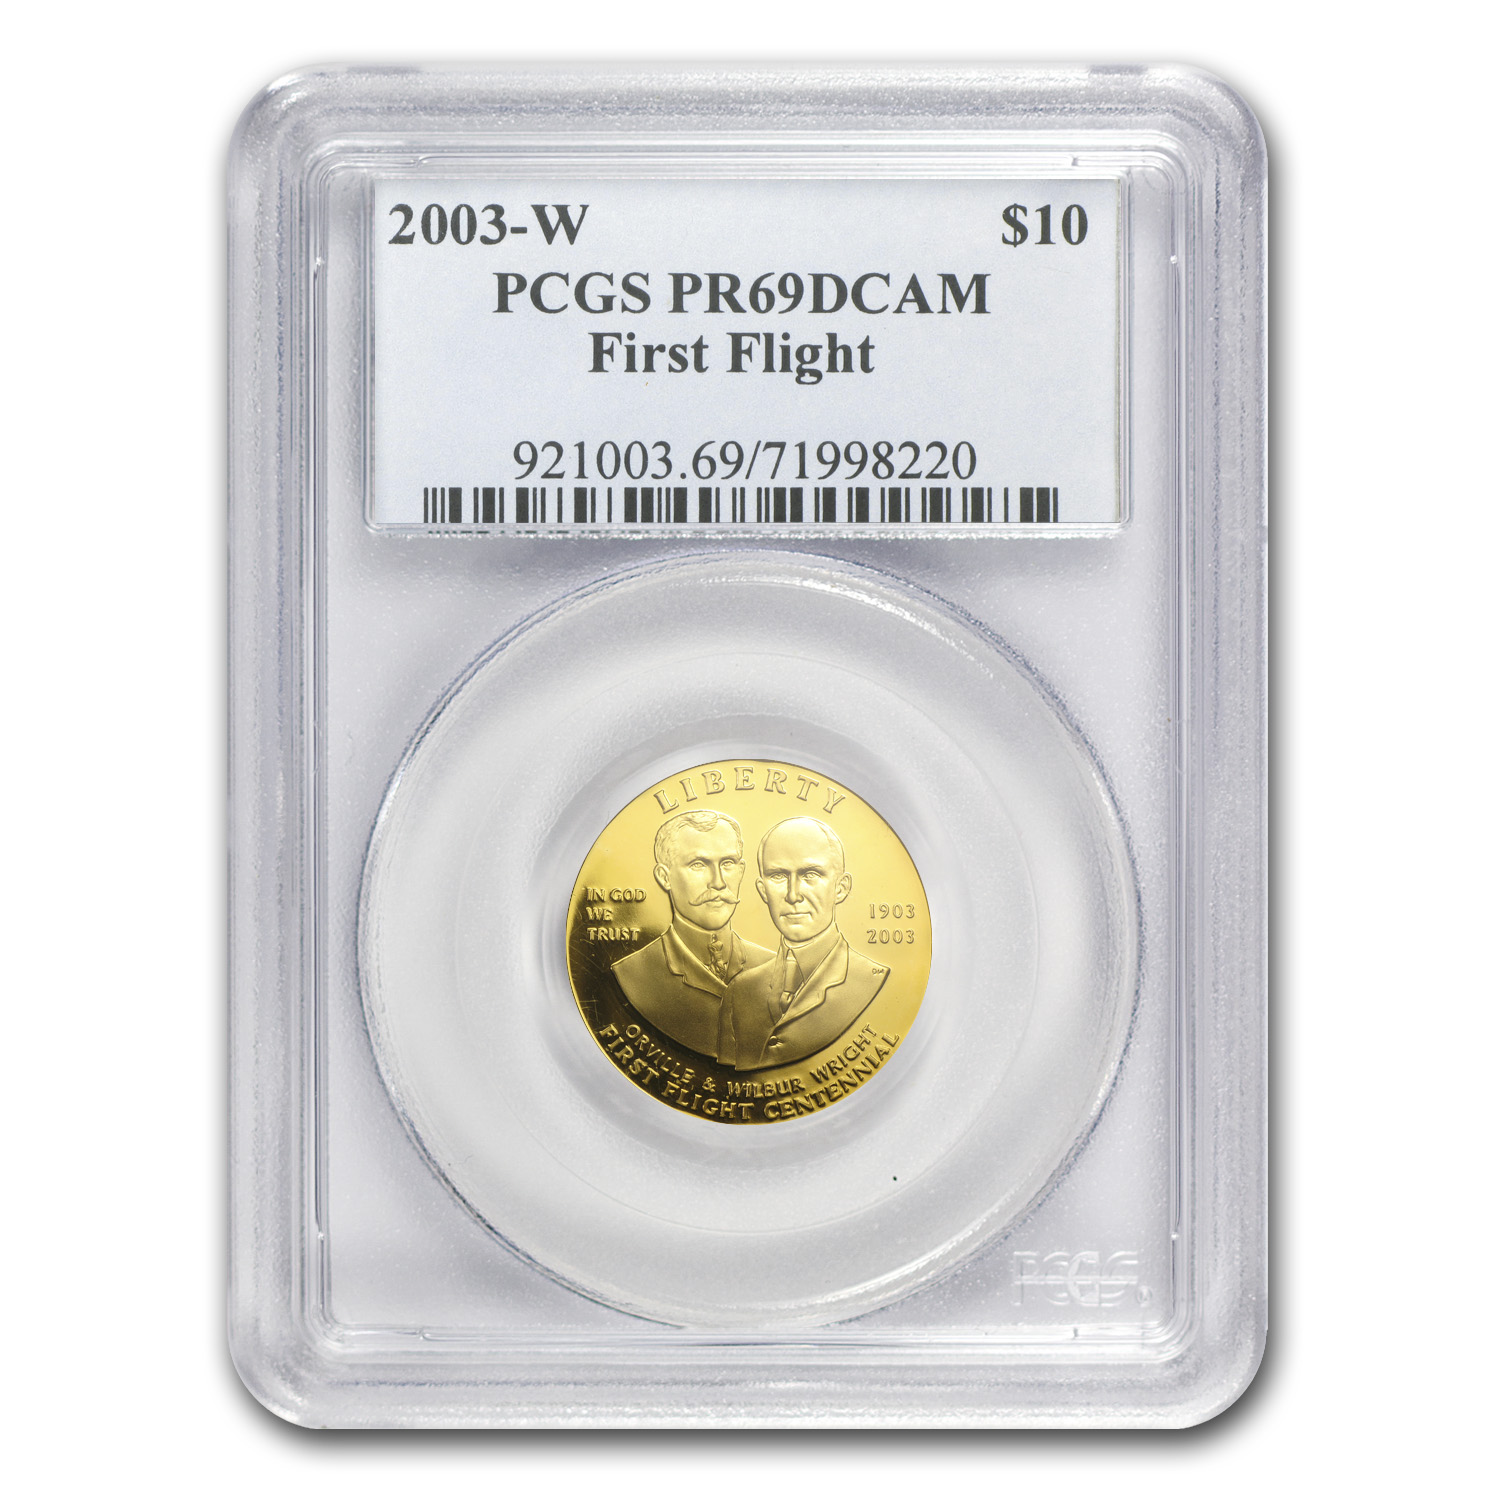 2003-W $10 Gold Commem First Flight Centennial PR-69 PCGS